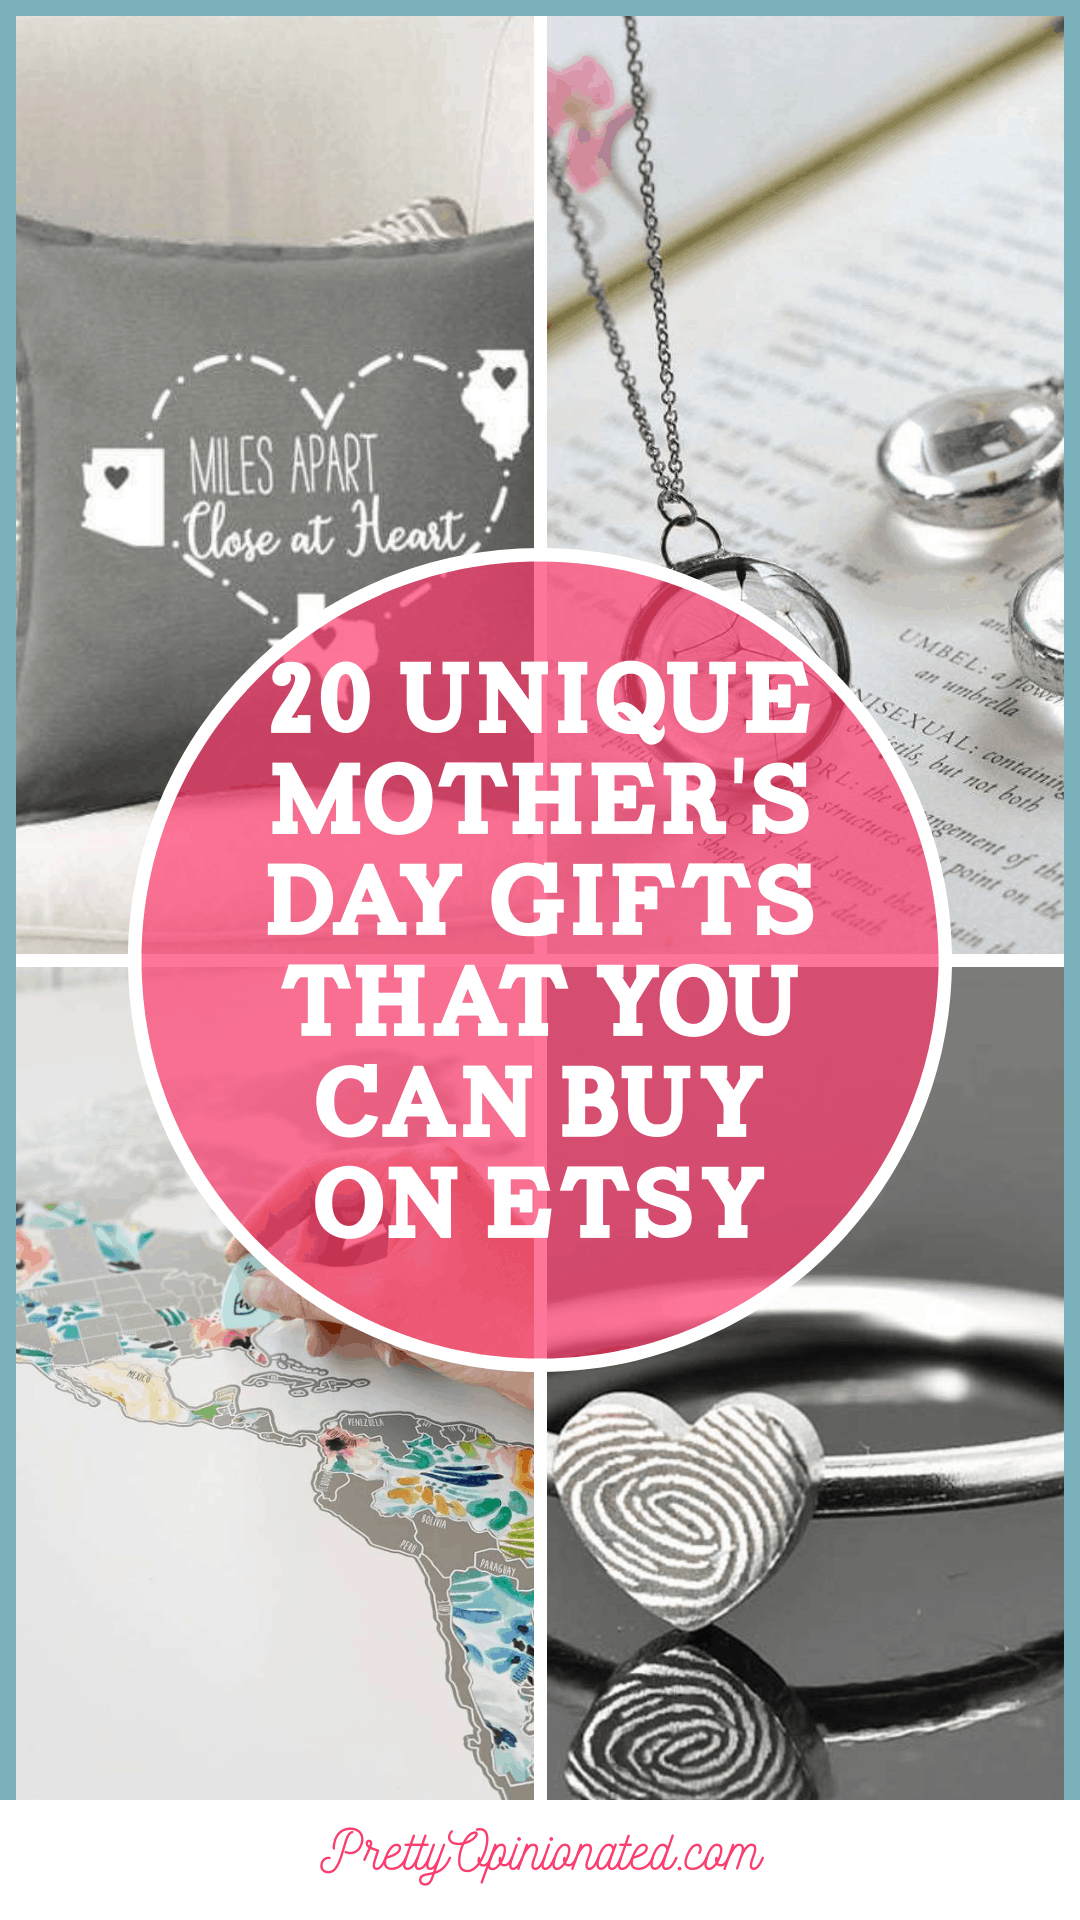 Unique mothers day gifts on etsy 1 20 Unique Mother's Day Gifts That You Can Buy on Etsy